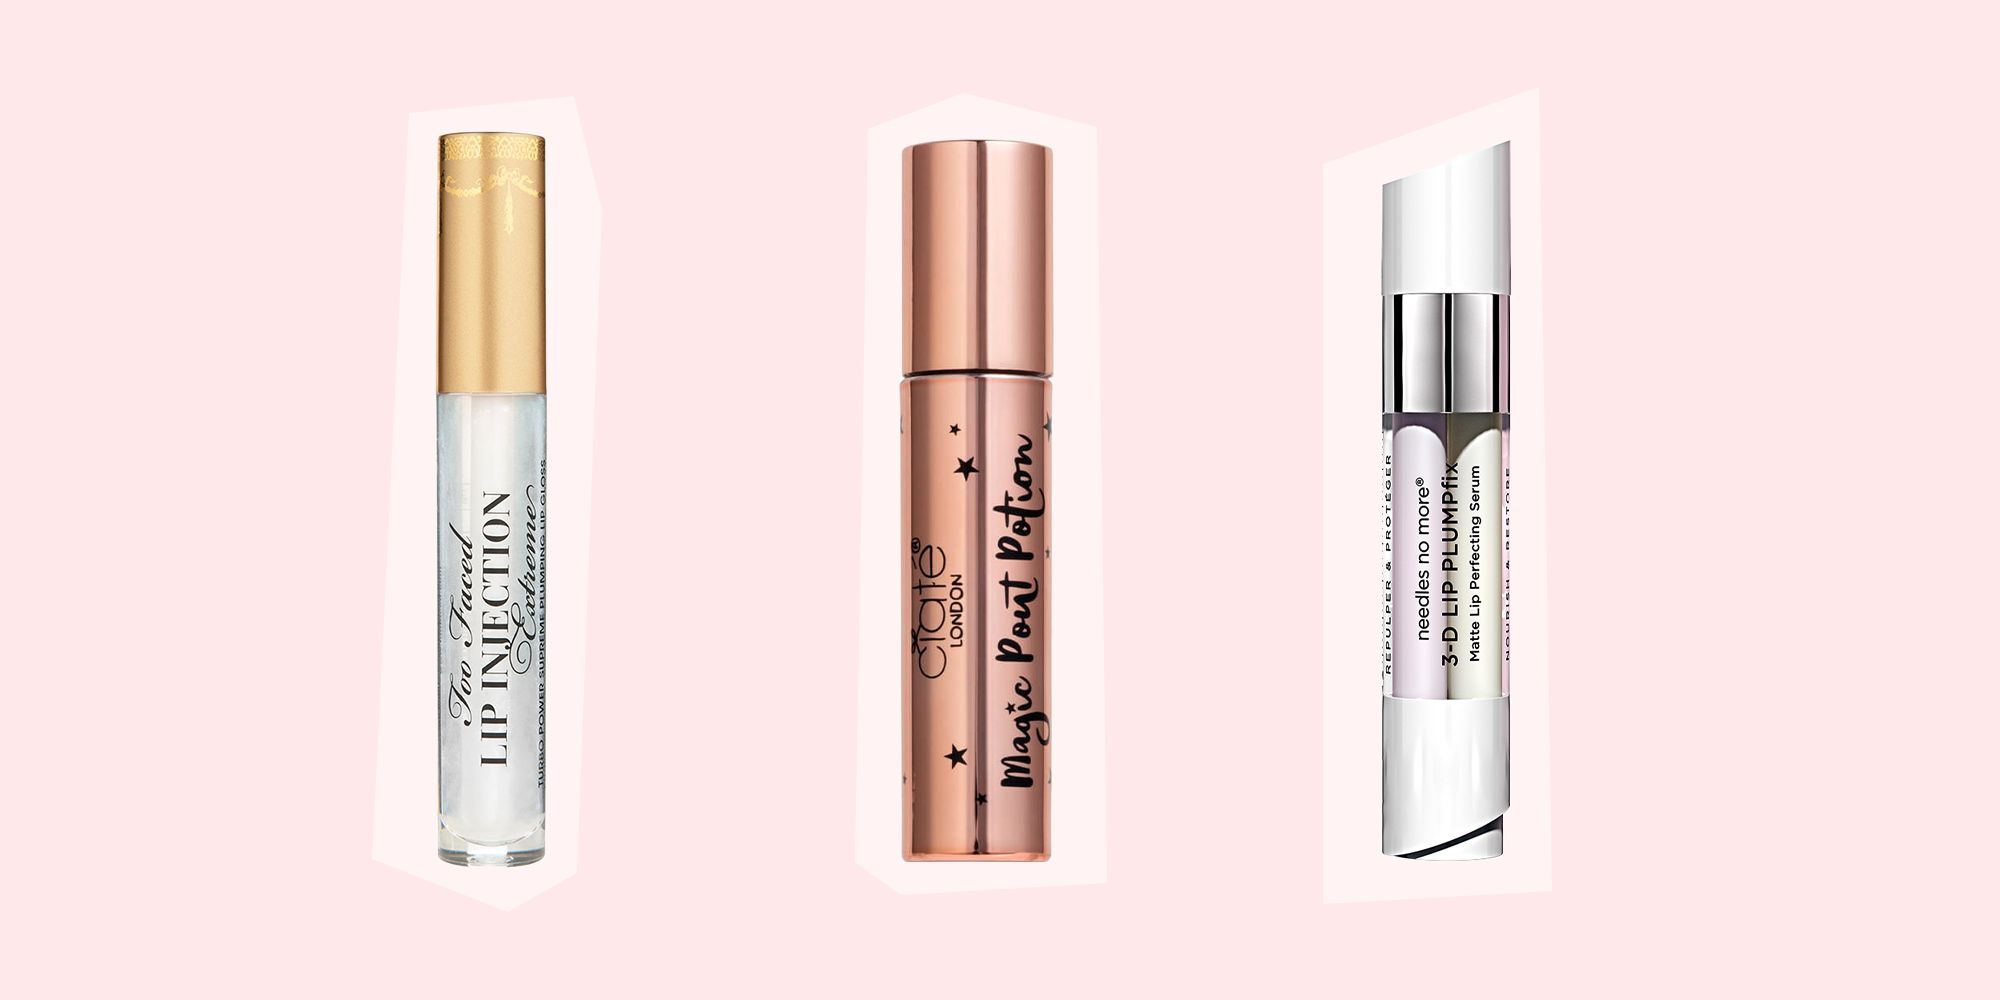 11 Best Lip Plumpers of 2017 - Lip-Plumping Treatments for